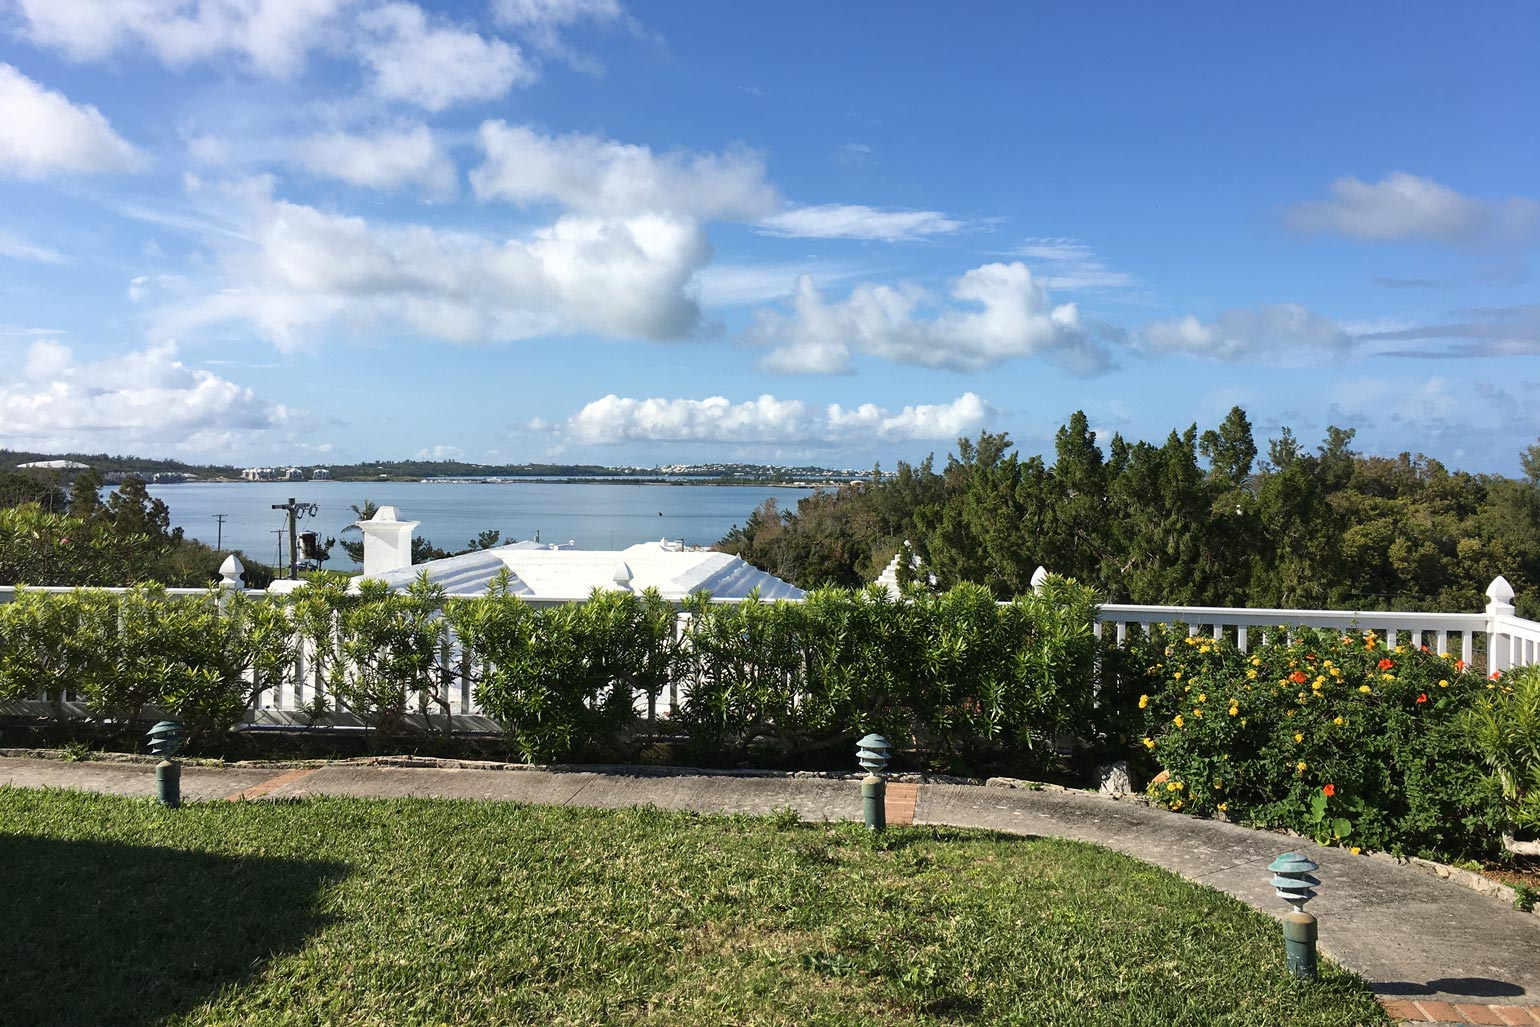 The Digital Nomads view from their Bermuda home.